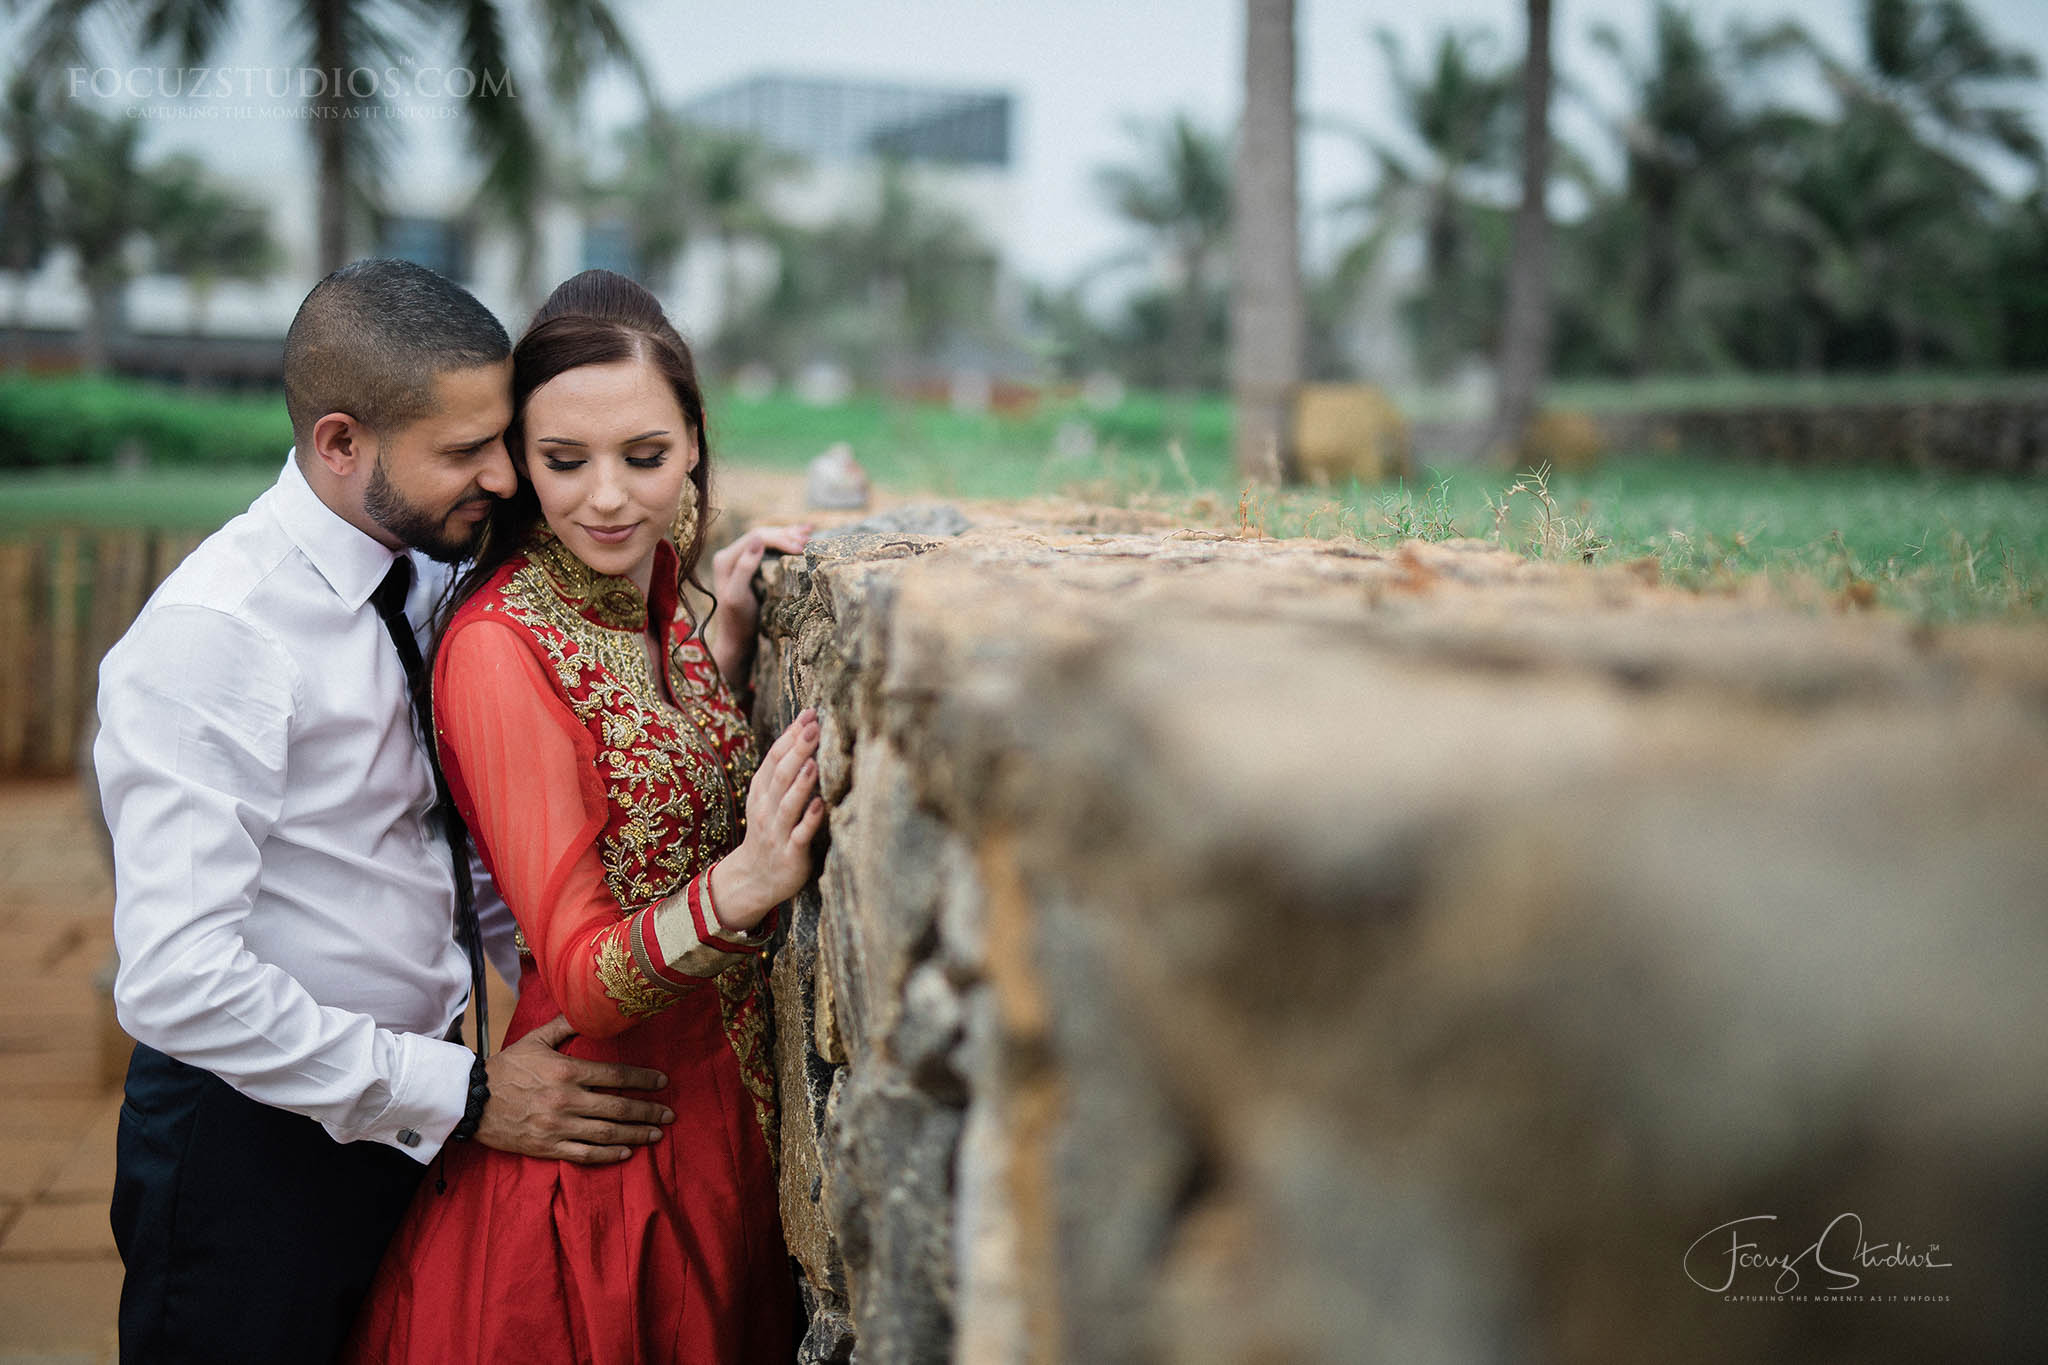 Couples seeking Men Chennai